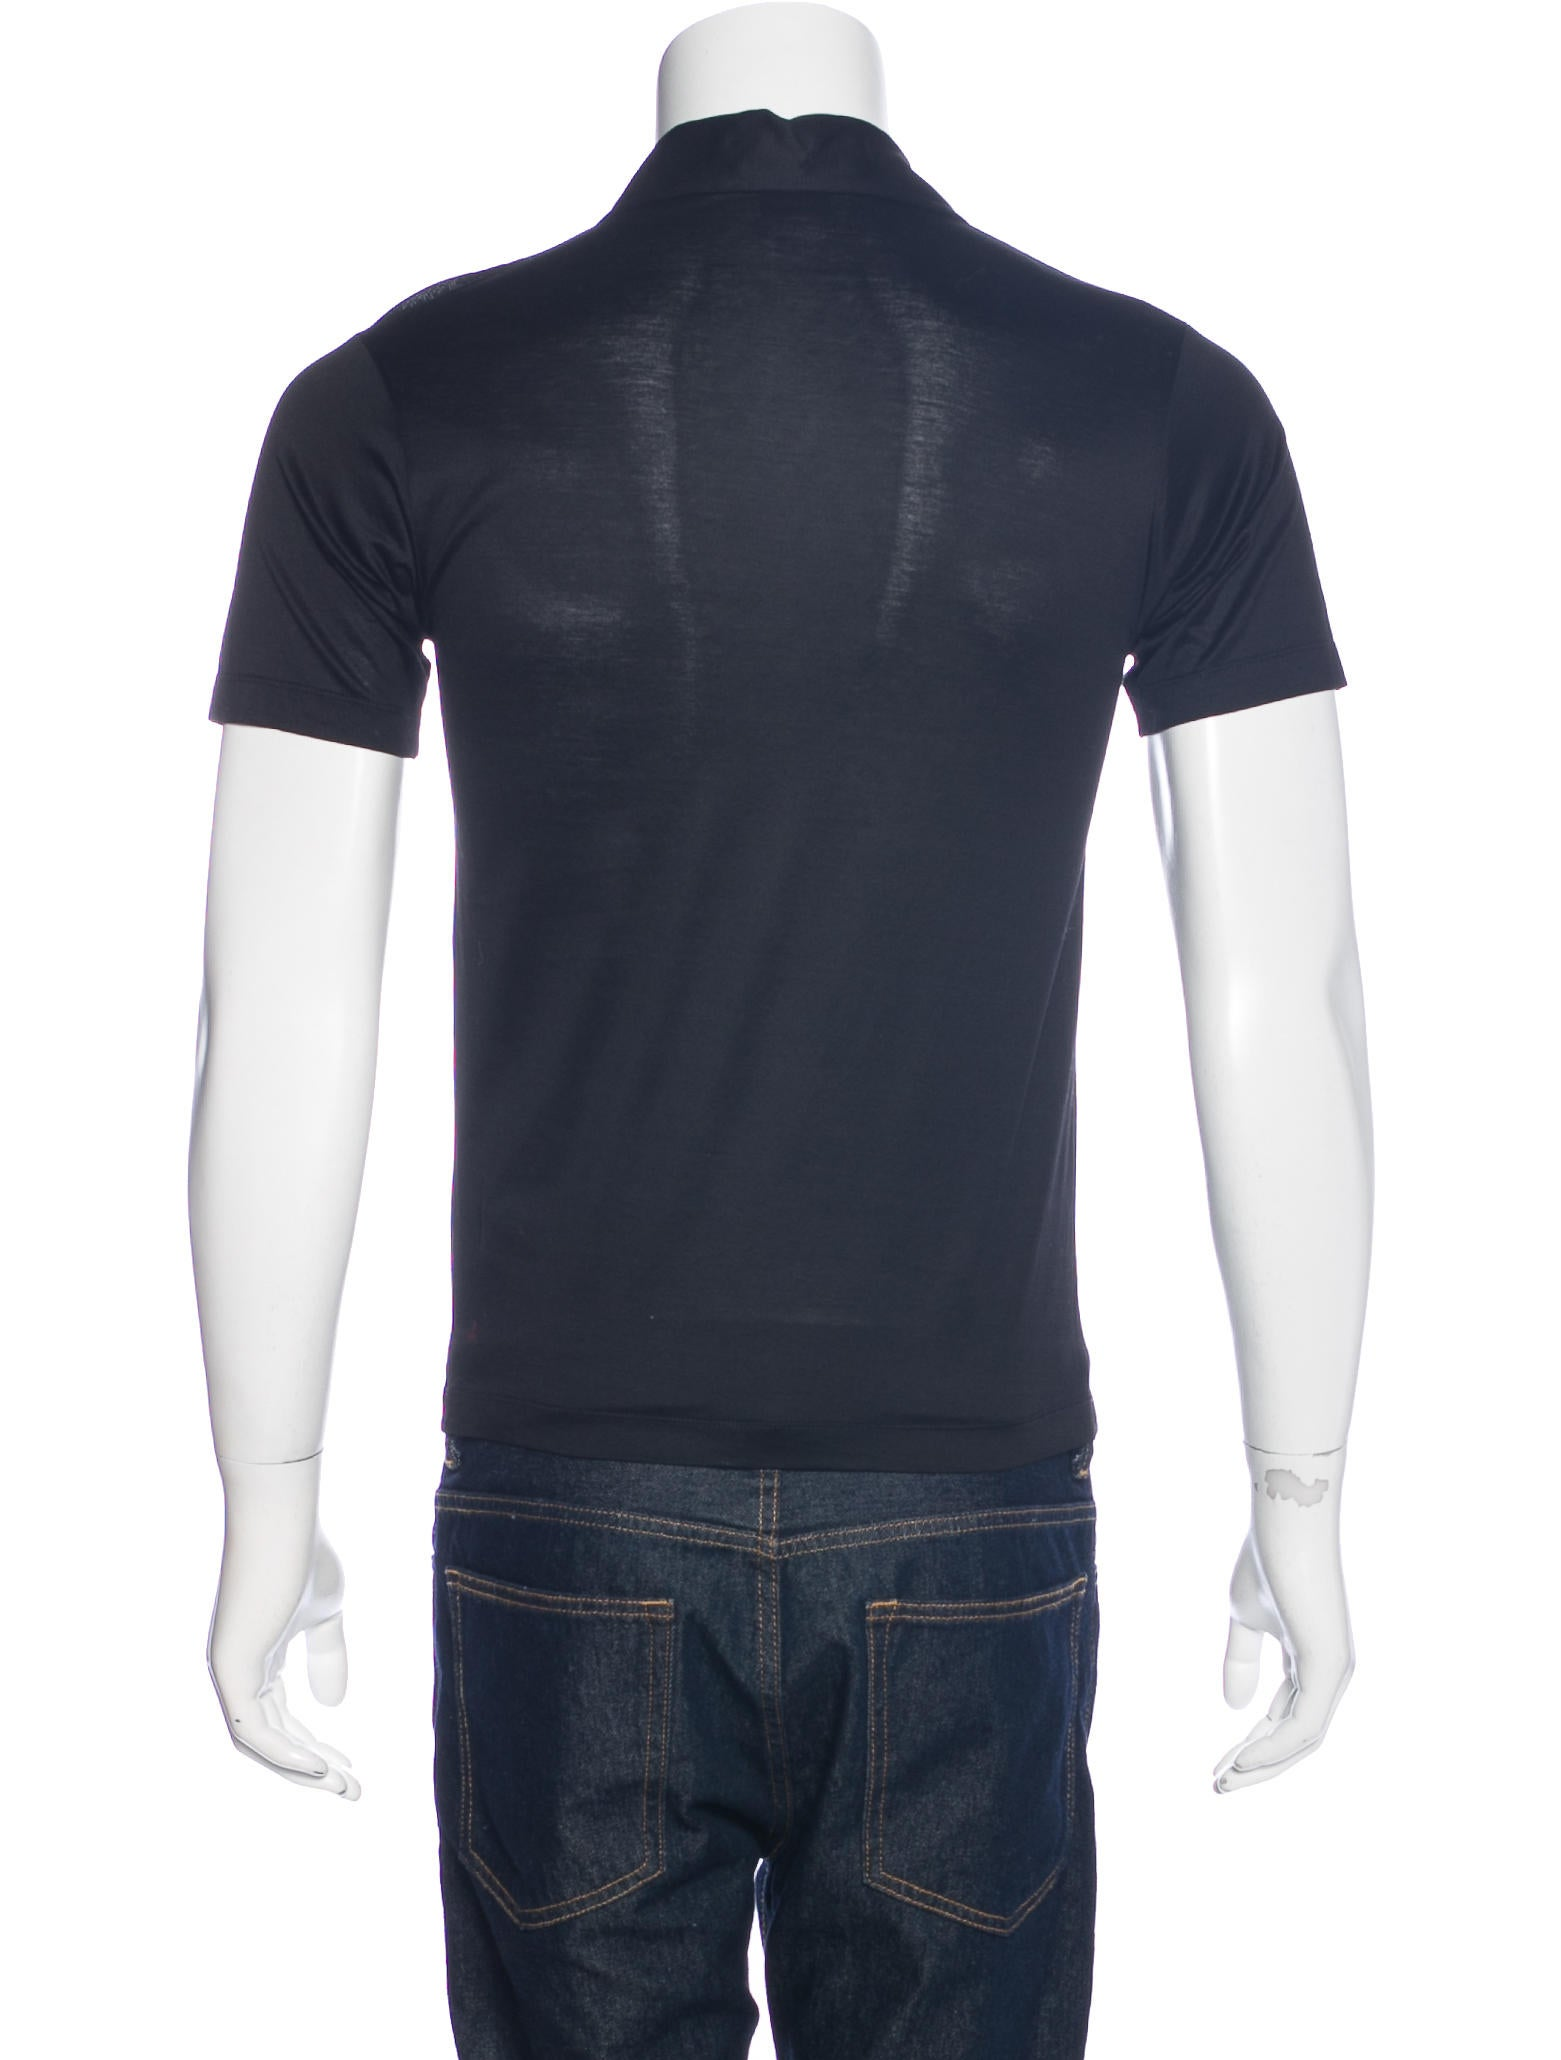 Gucci Jersey Knit Polo Shirt Clothing Guc159559 The